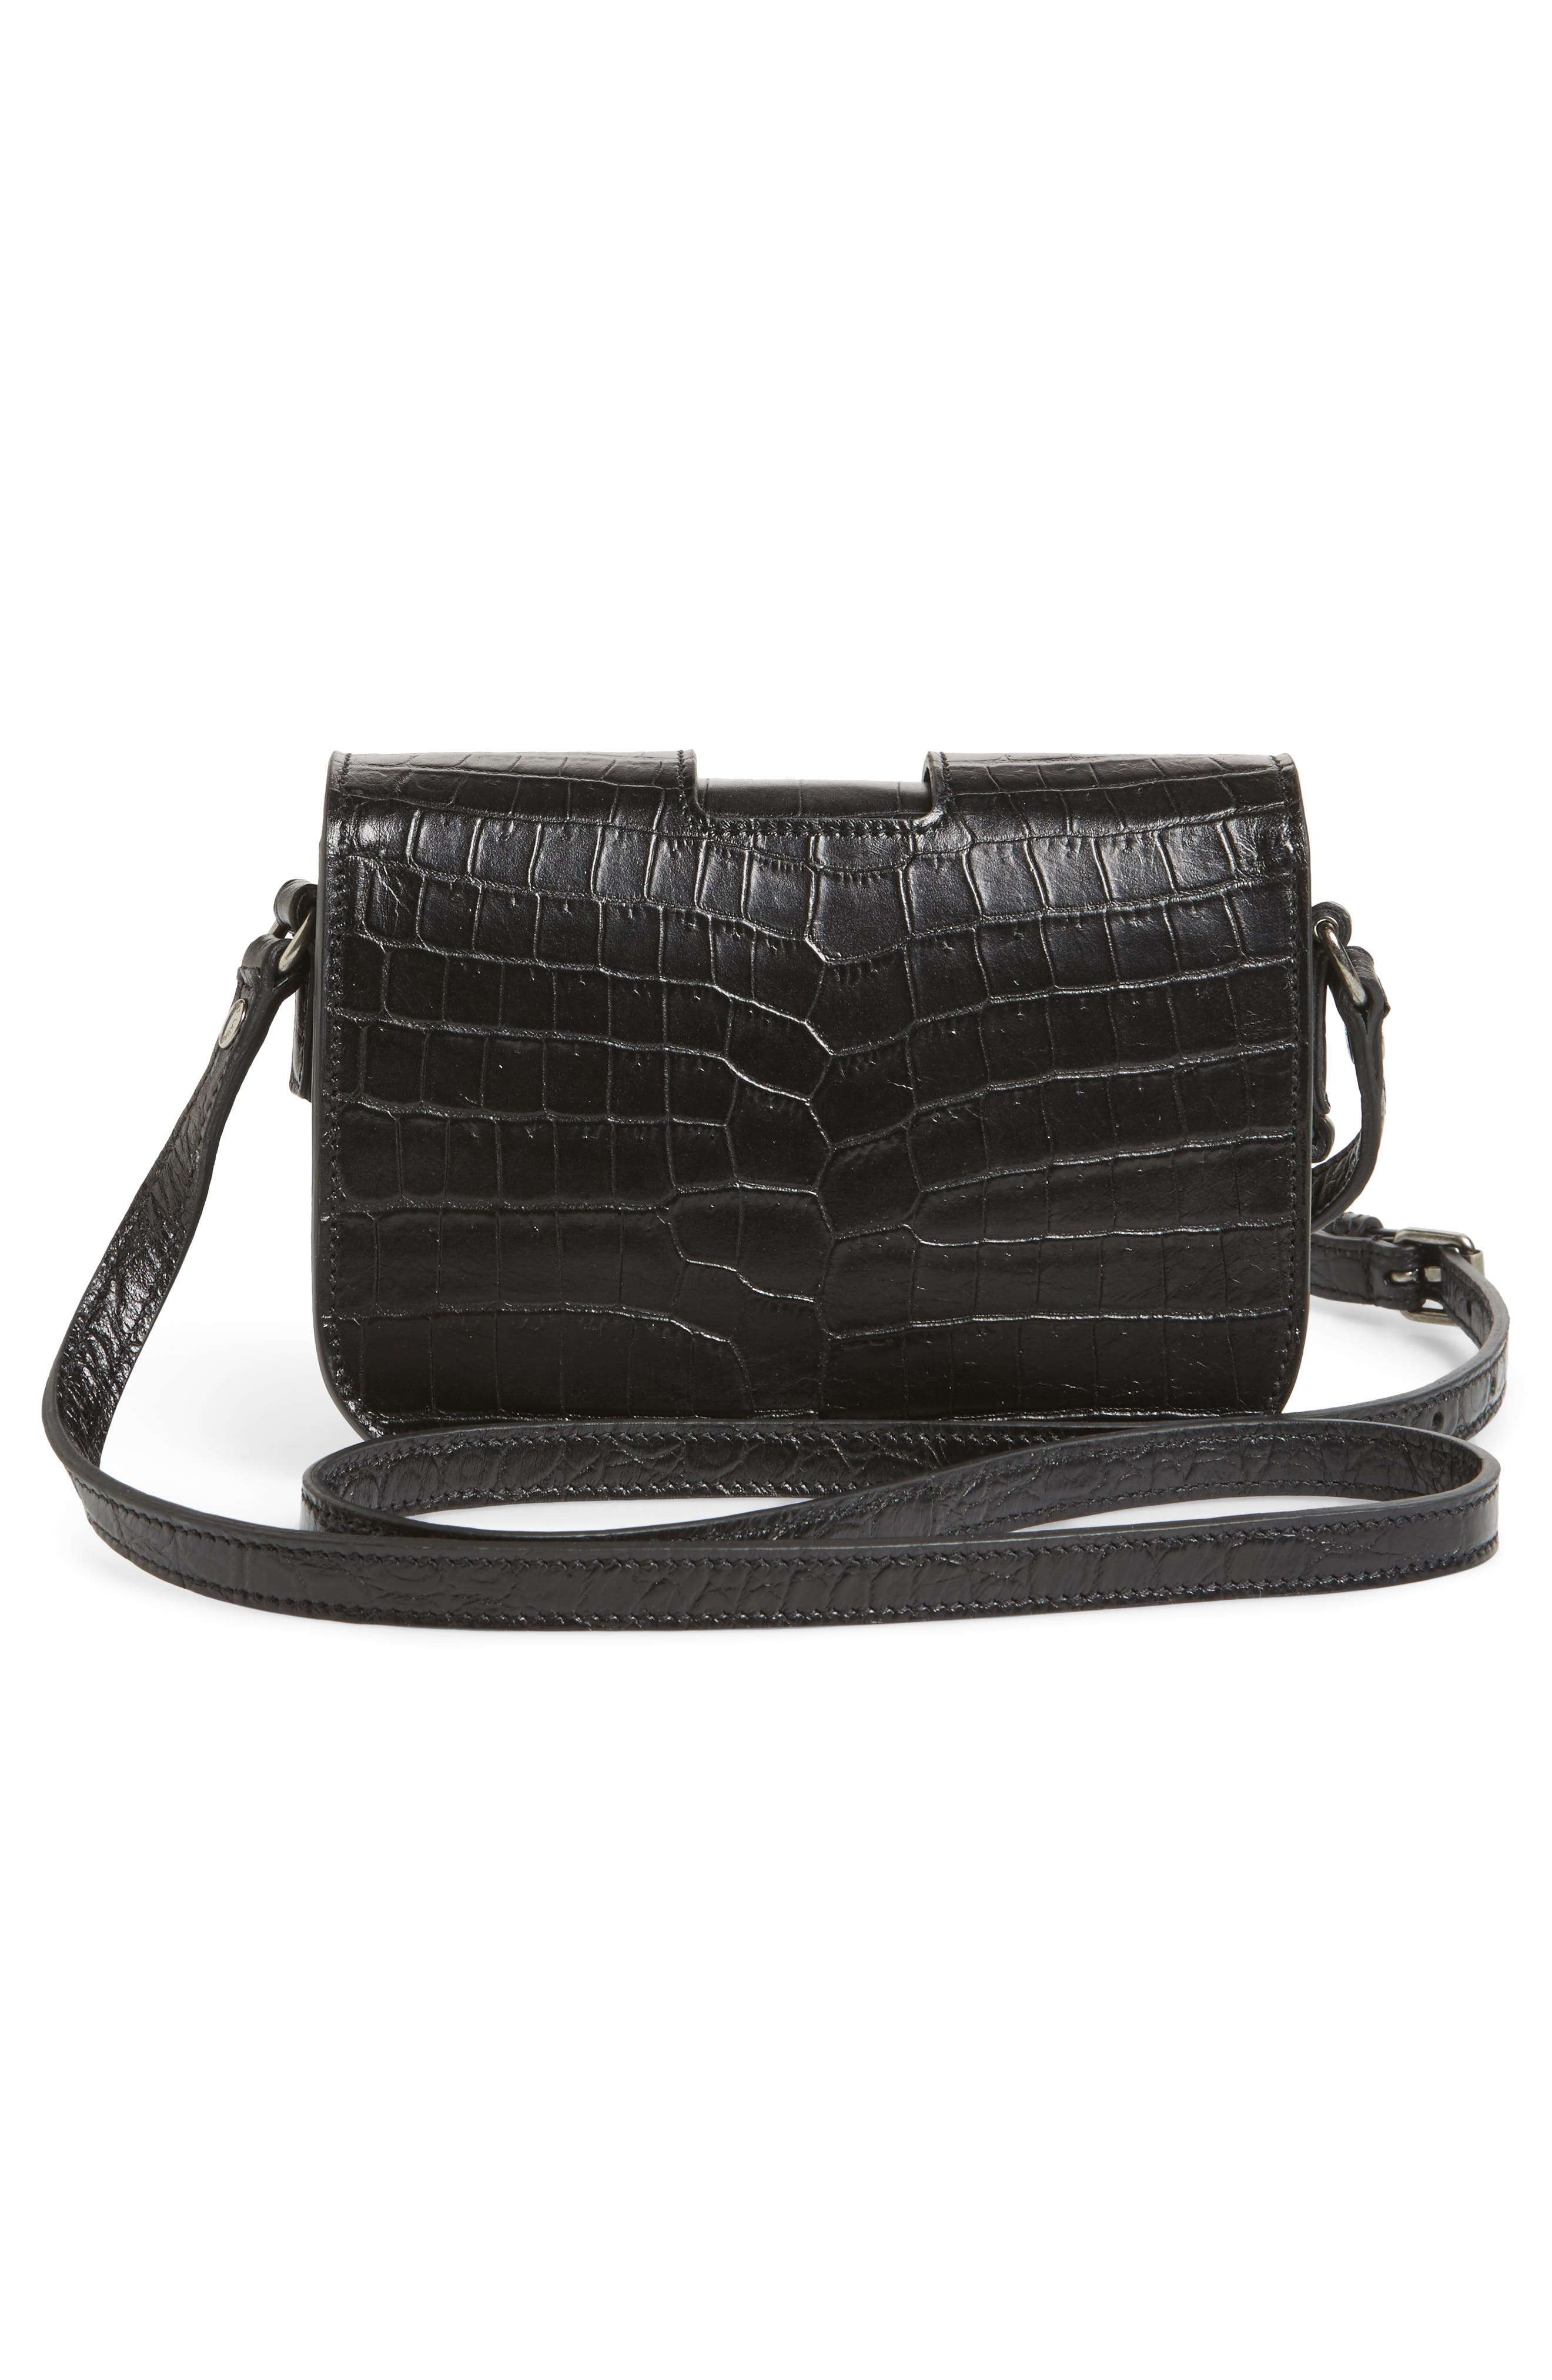 Croc Embossed Leather Crossbody Bag,                             Alternate thumbnail 3, color,                             001